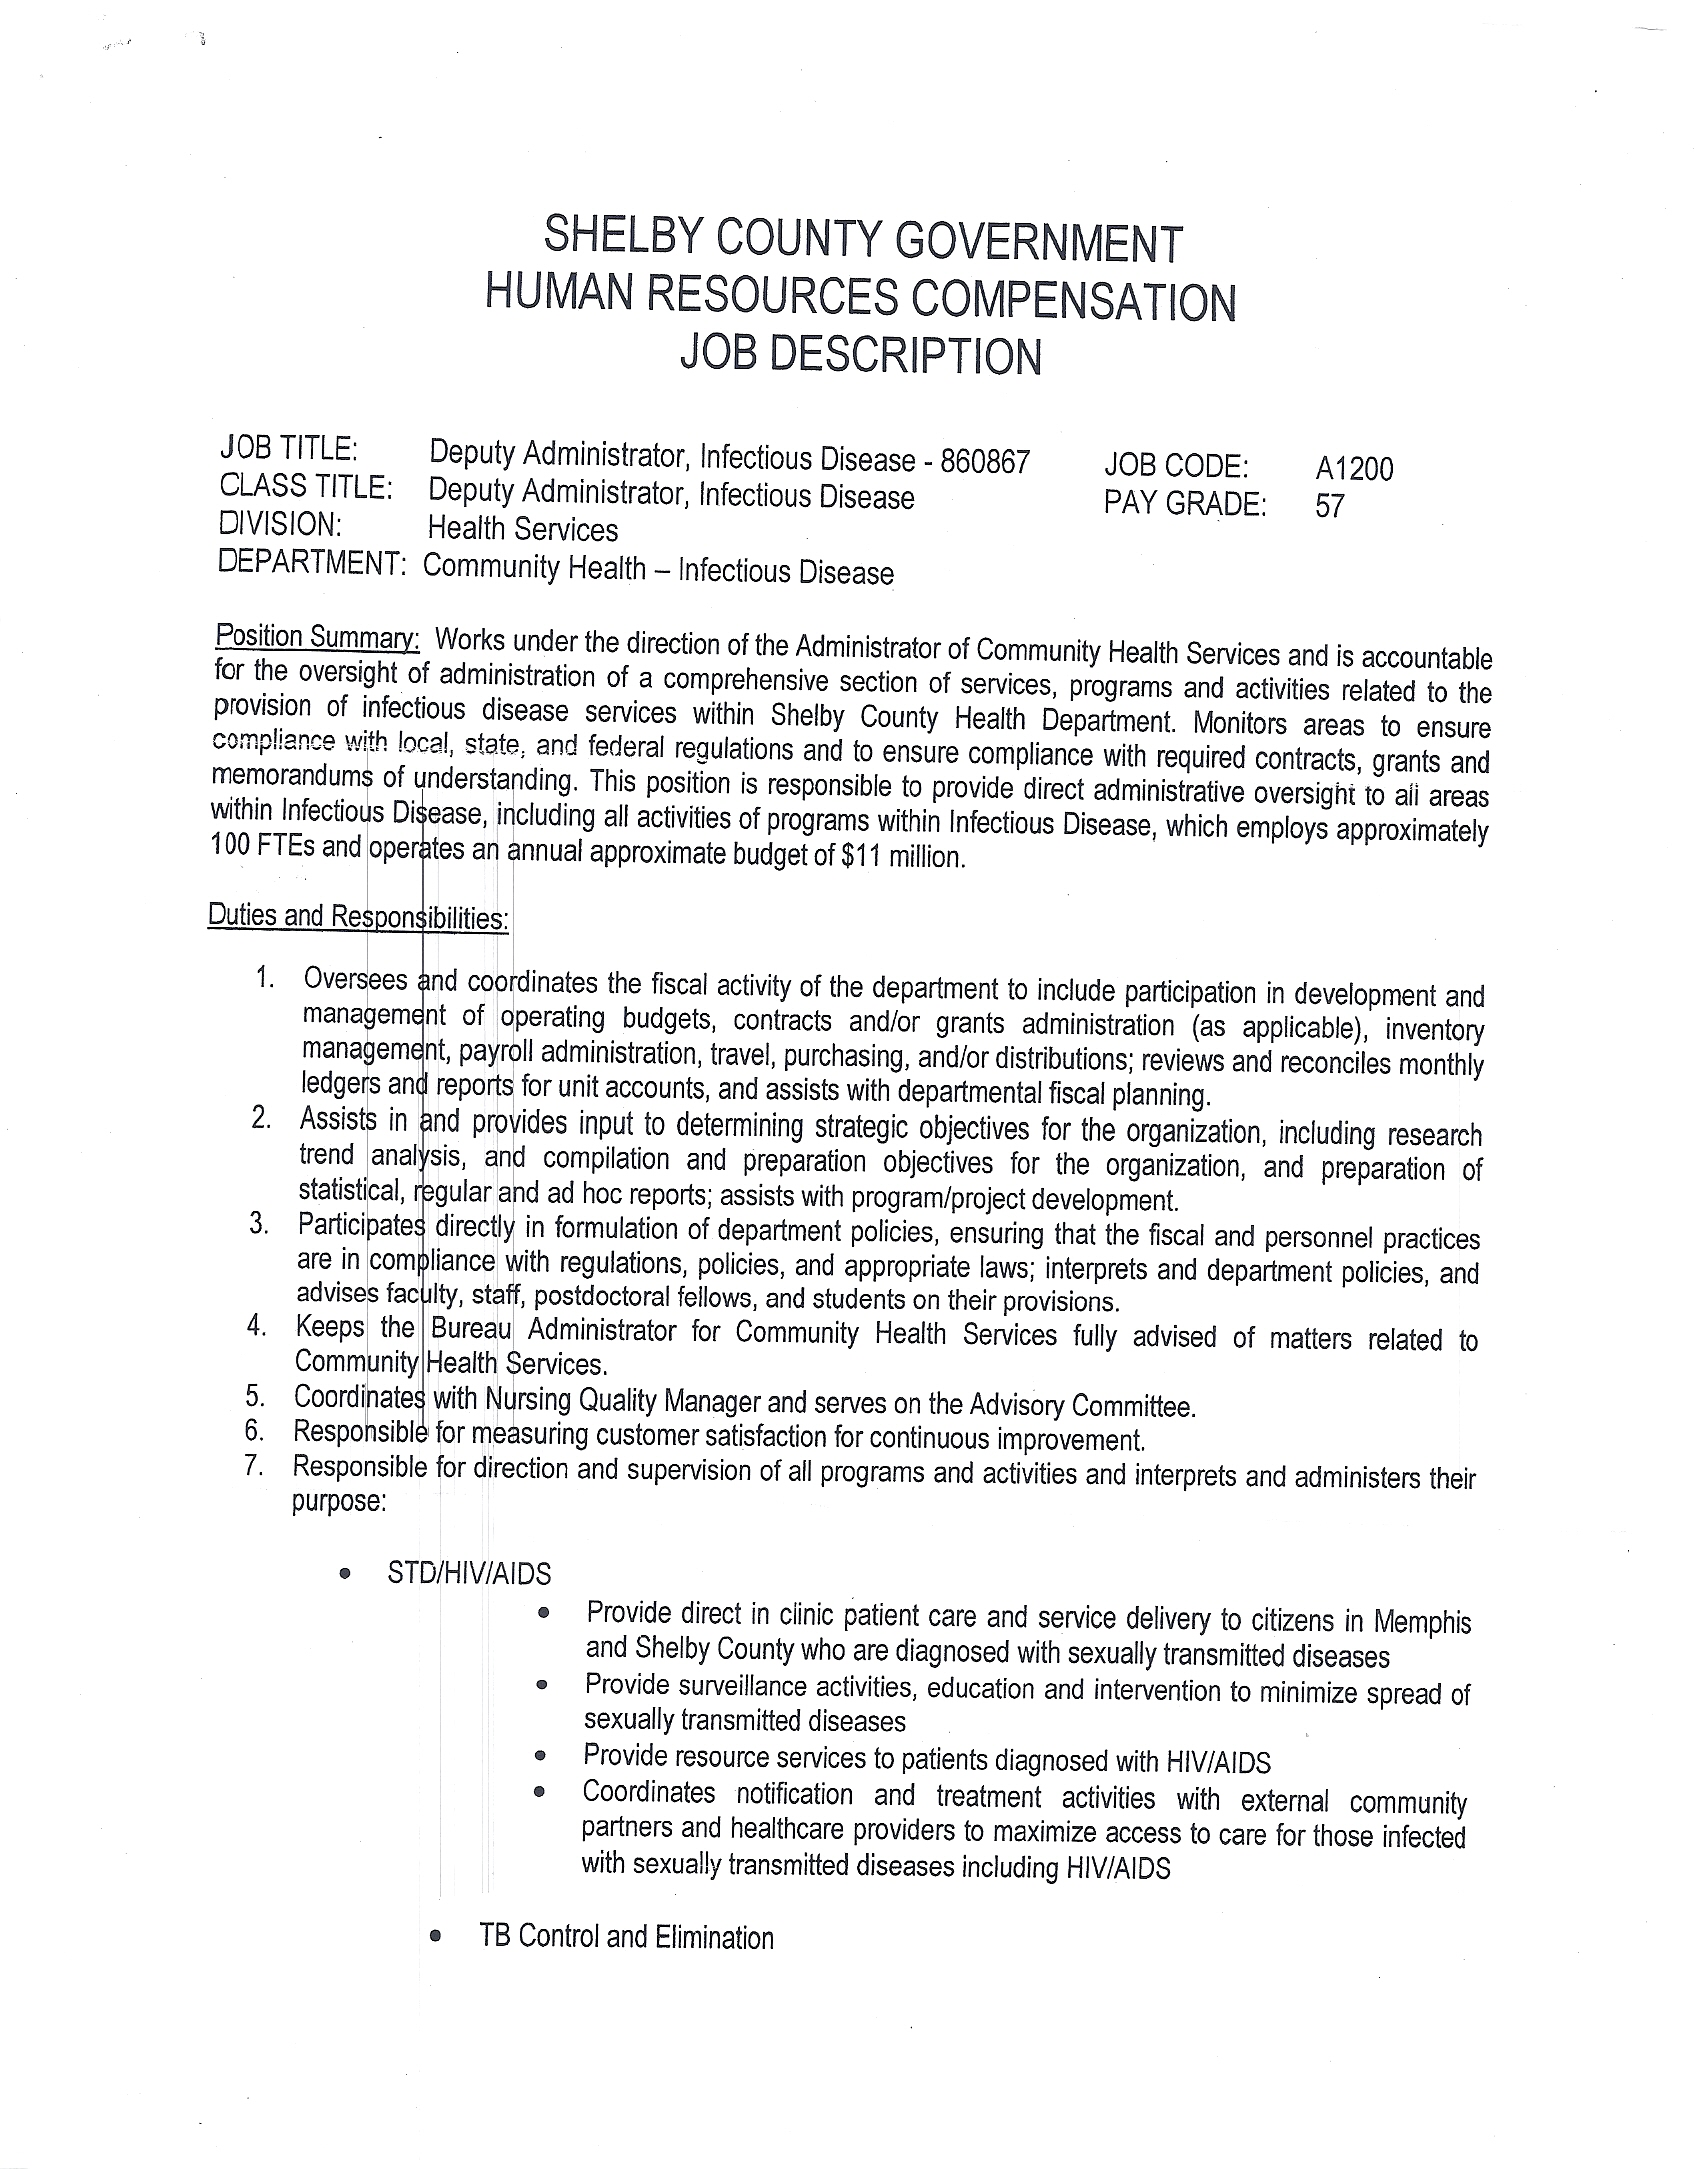 Emailing Resume And Cover Letter What To Say